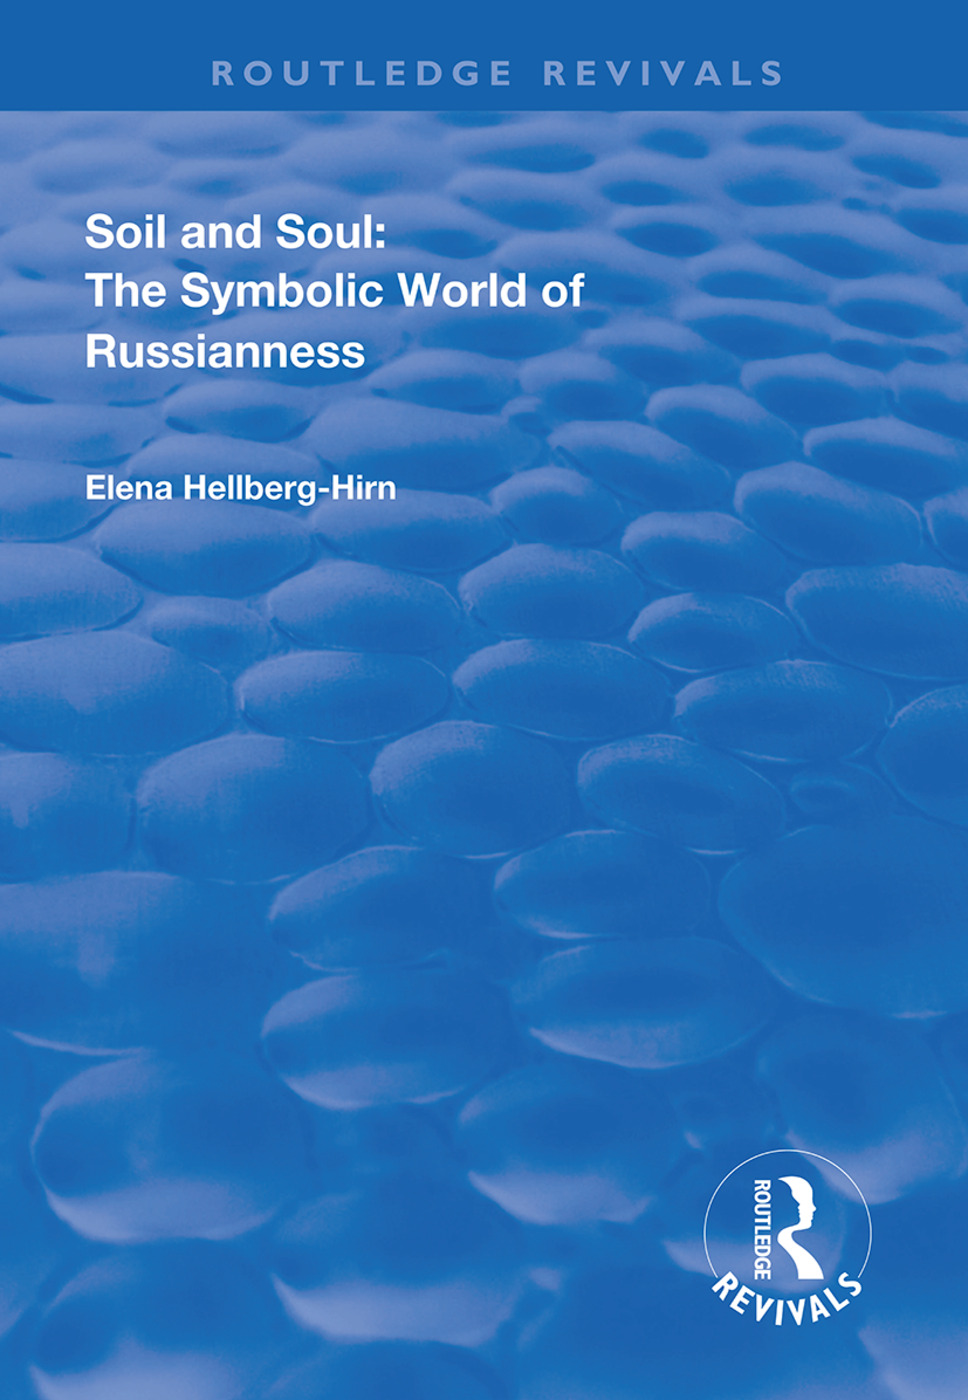 Soil and Soul: The Symbolic World of Russianness book cover